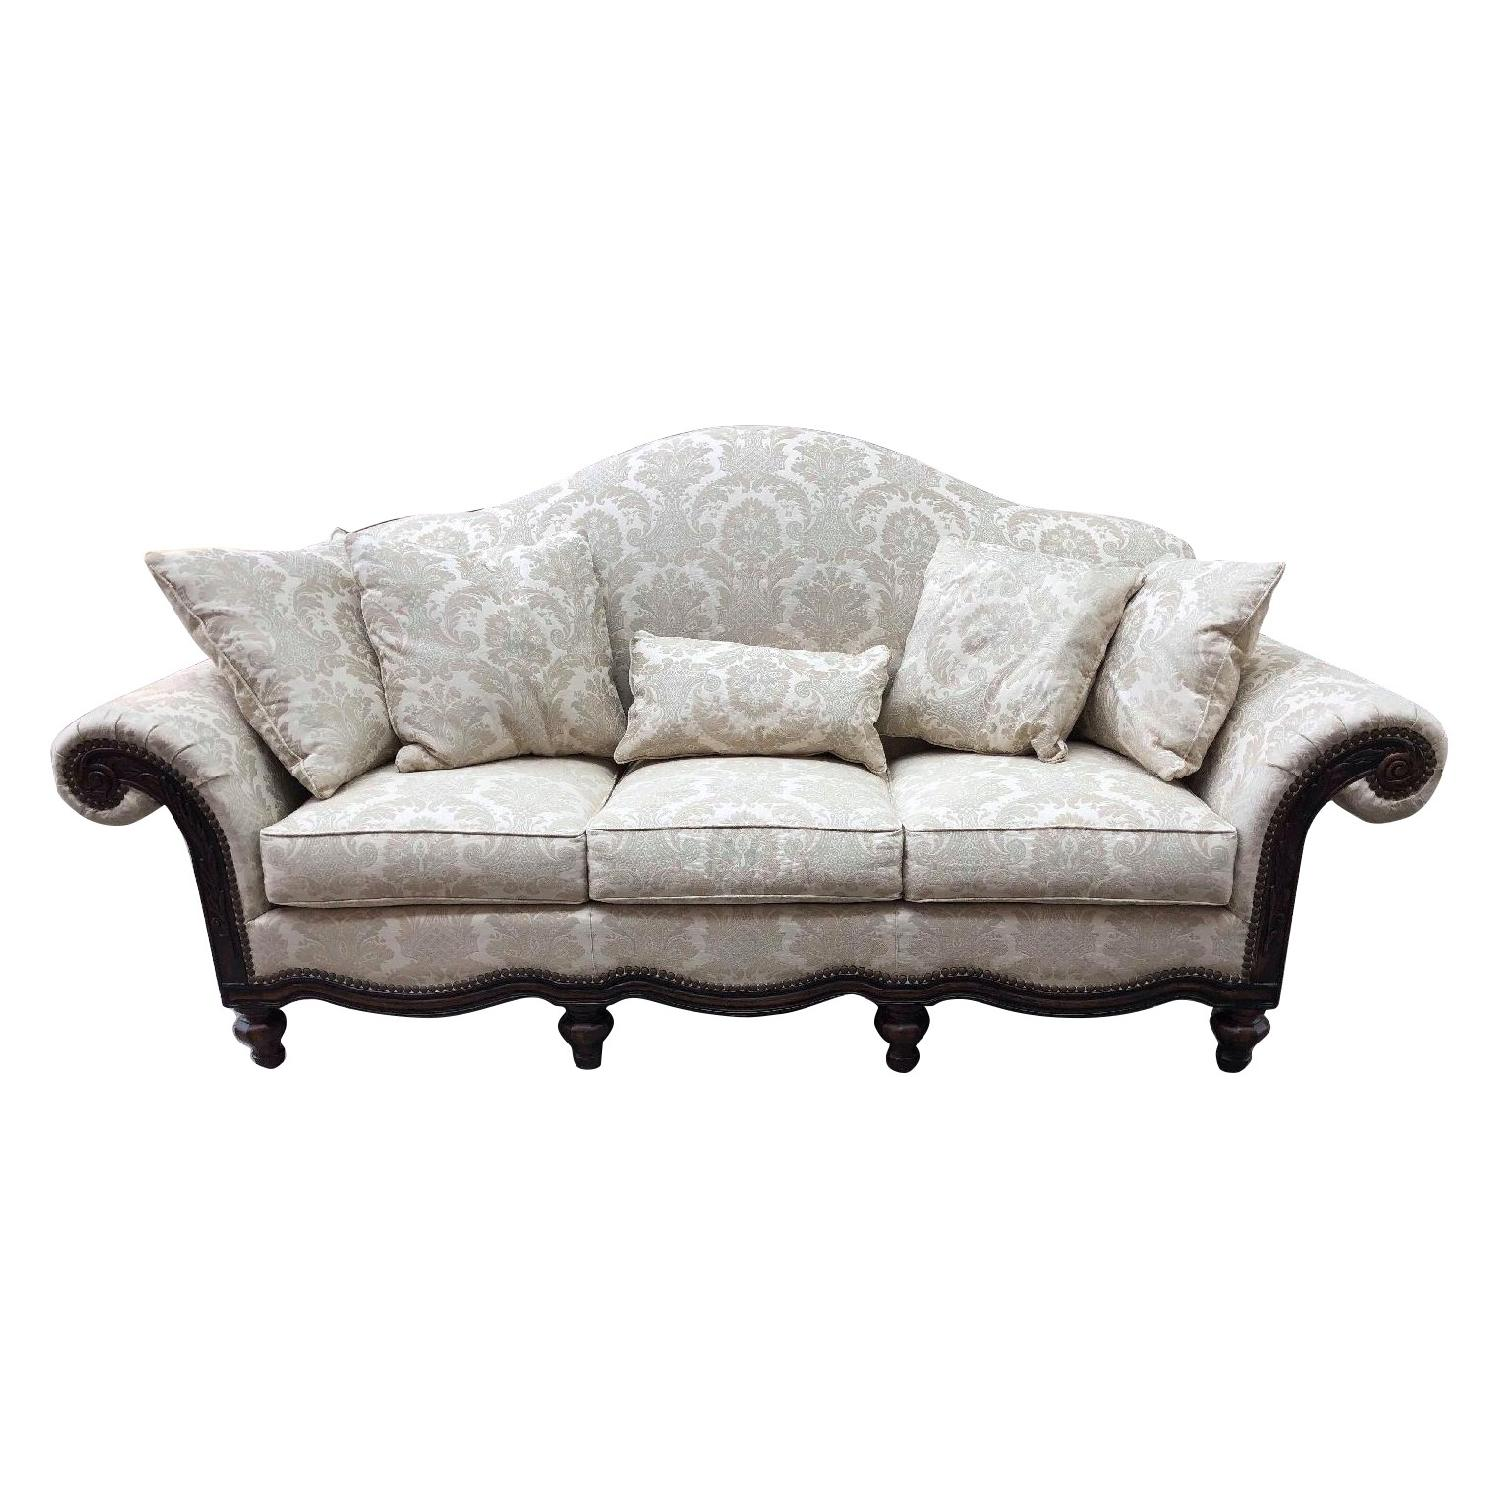 Thomasville Upholstered Sofa